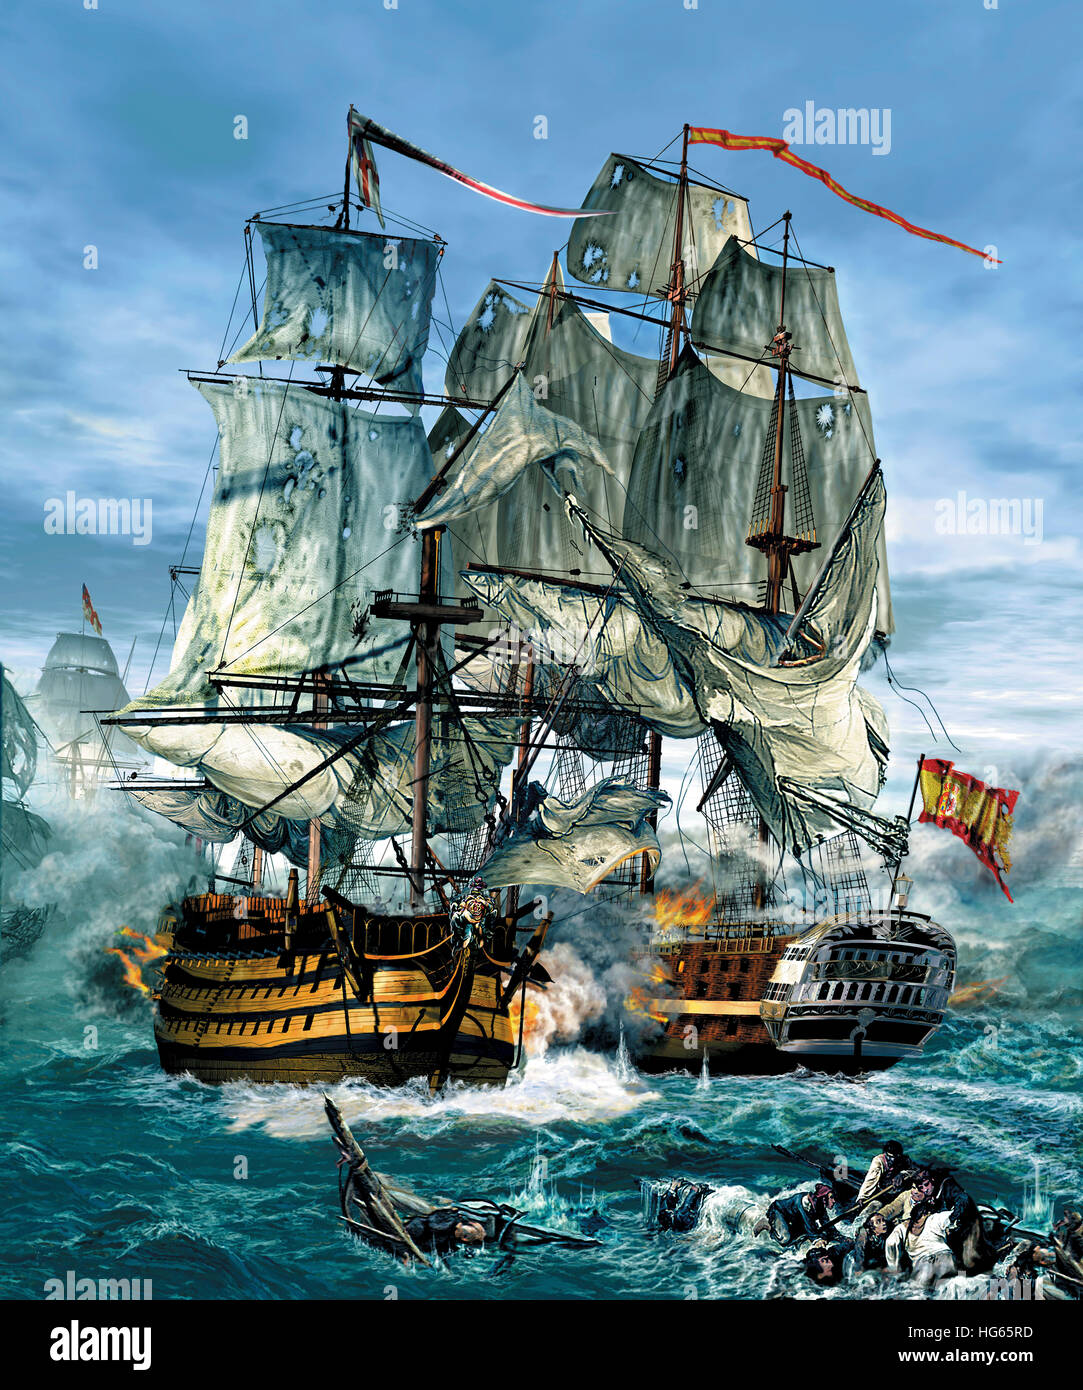 Naval warfare was dominated by sailing ships from the 16th to the mid 19th century. - Stock Image